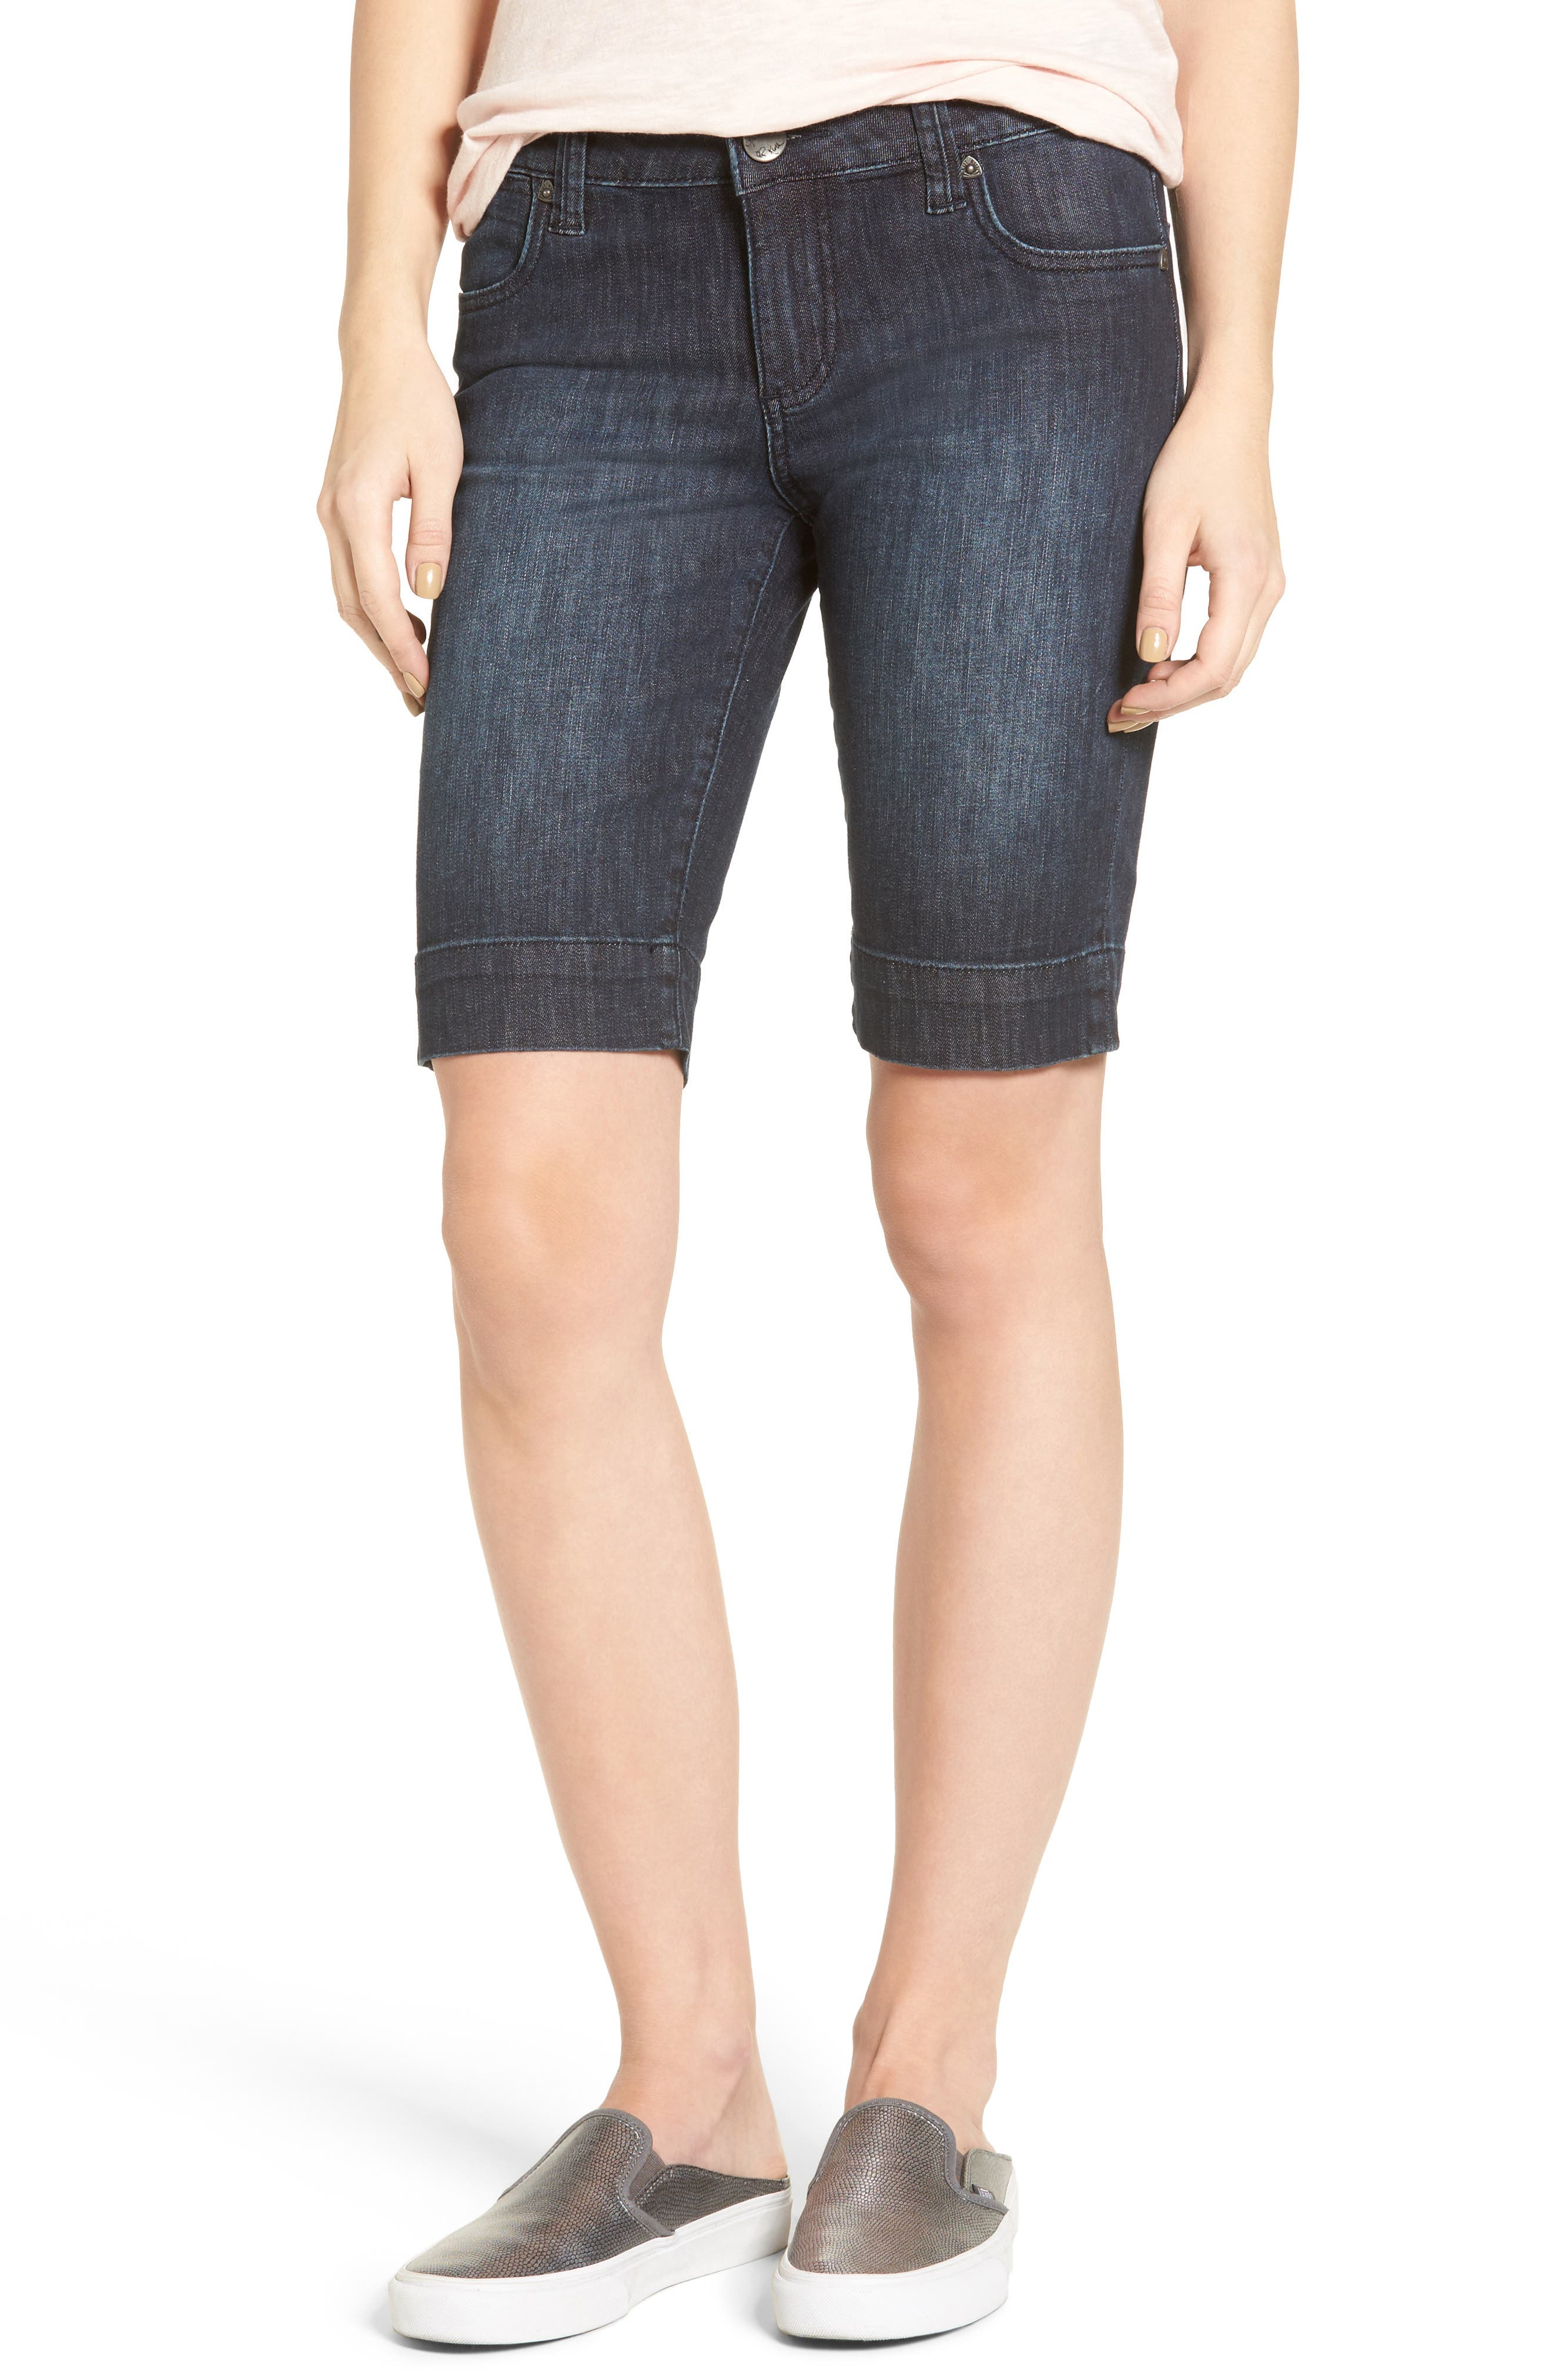 Alternate Image 1 Selected - KUT from the Kloth 'Natalie' Twill Bermuda Shorts